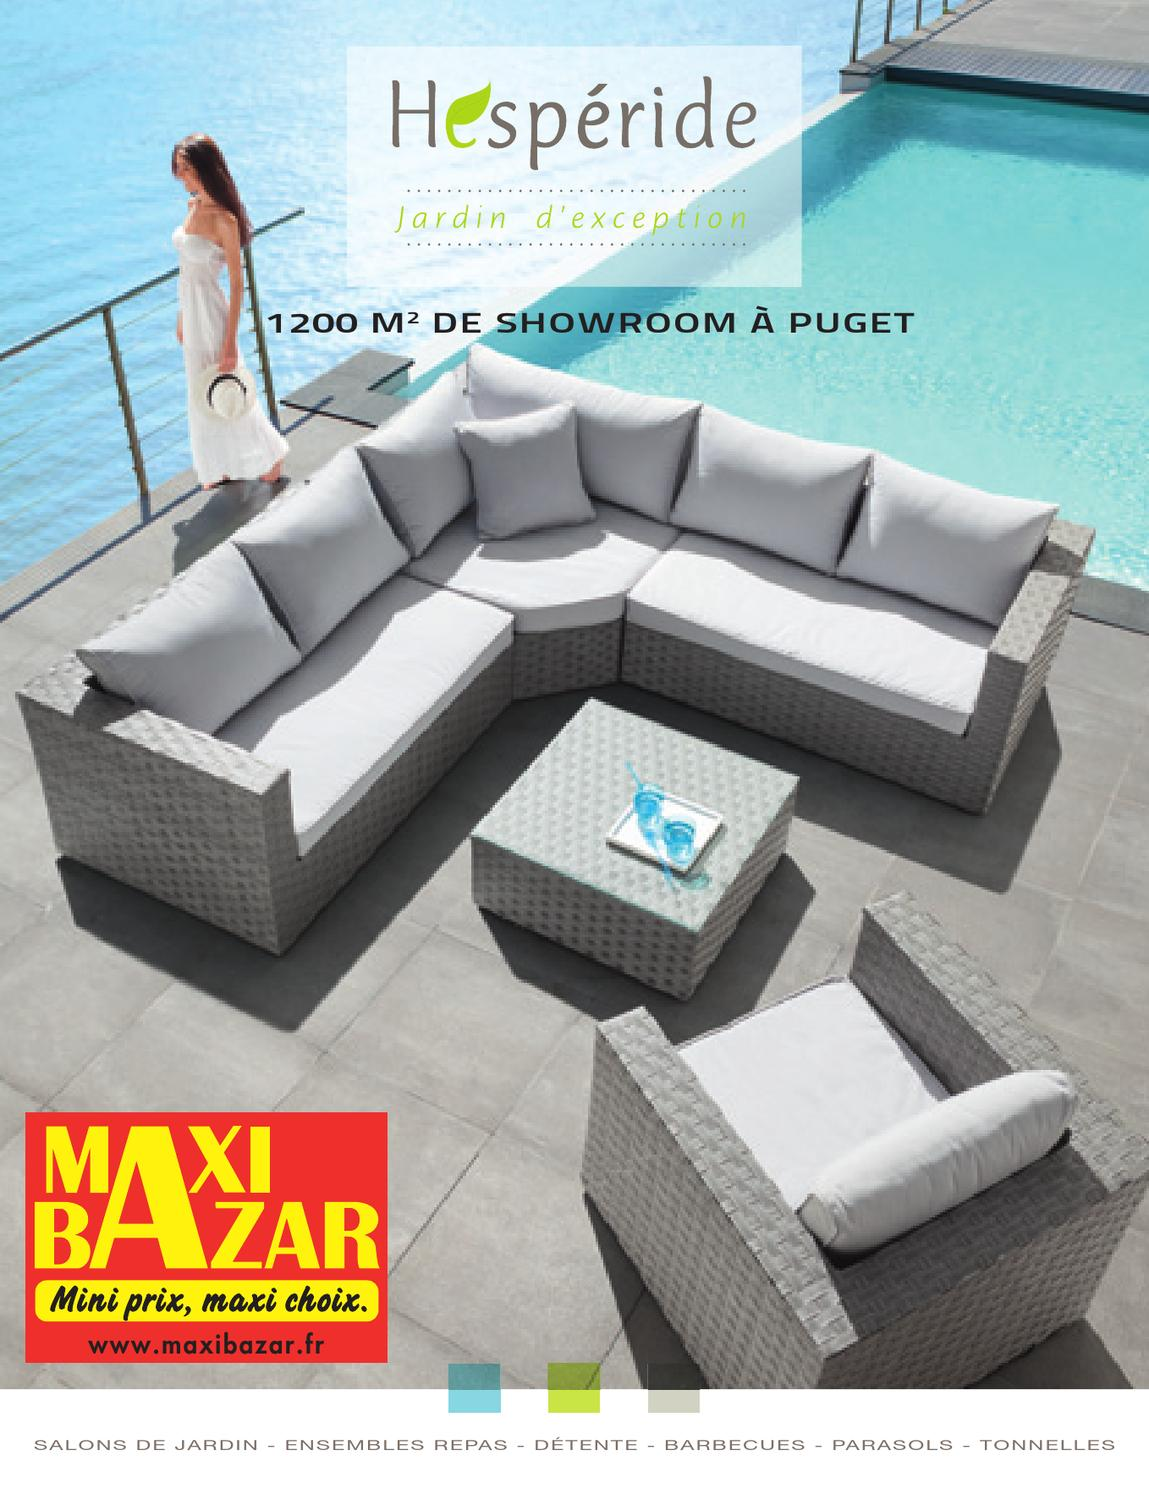 Table Exterieur Resine Beau Maxibazar Jardin 2013 Fr by Maxibazar issuu Of 36 Charmant Table Exterieur Resine